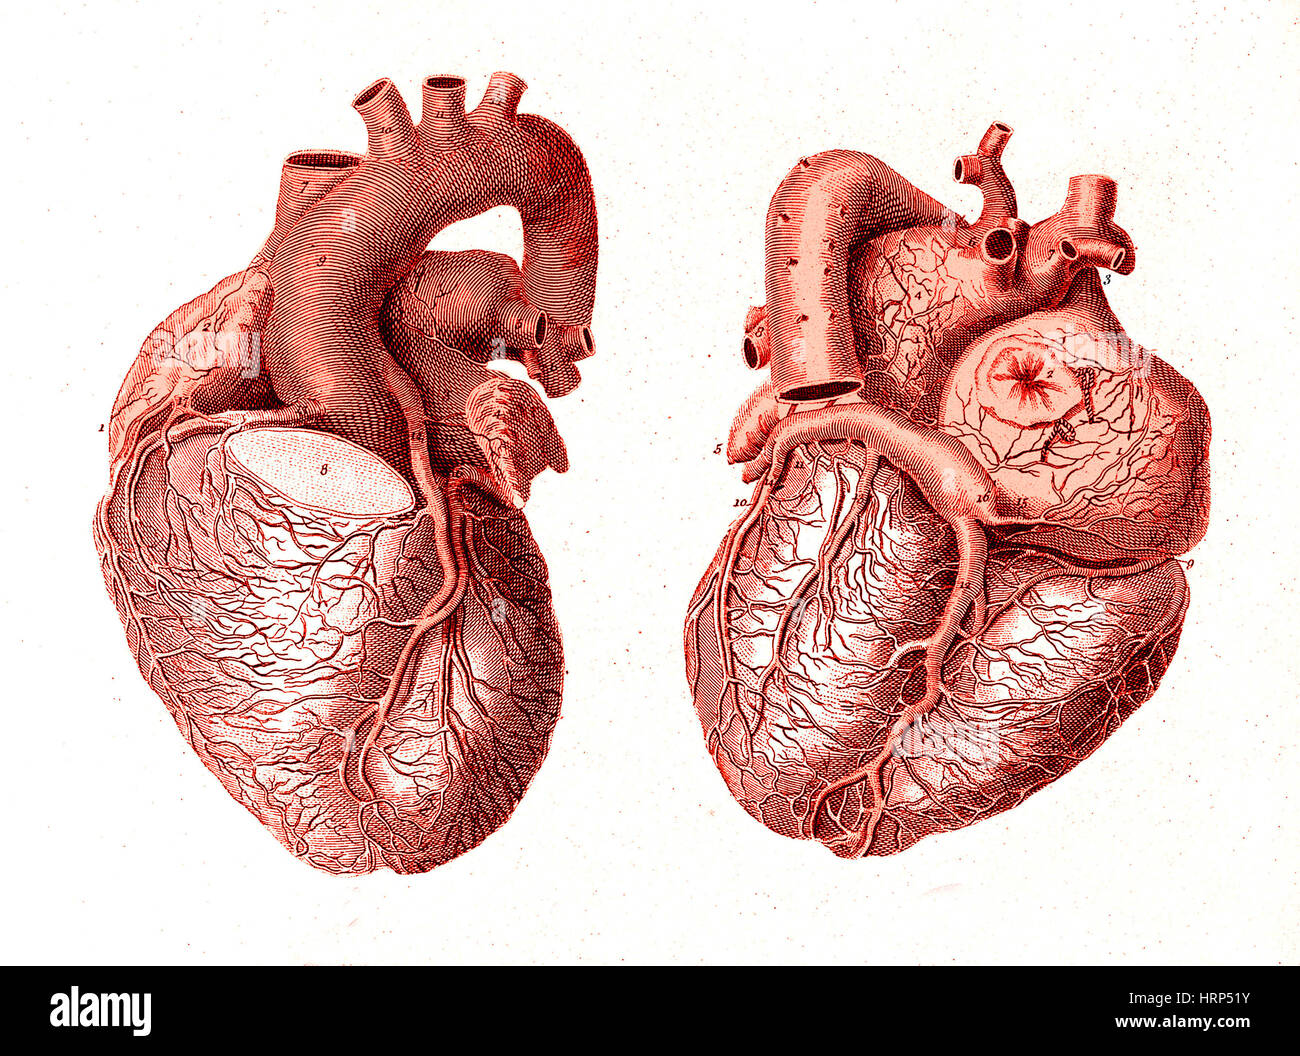 Dissected Heart Stock Photos Dissected Heart Stock Images Alamy